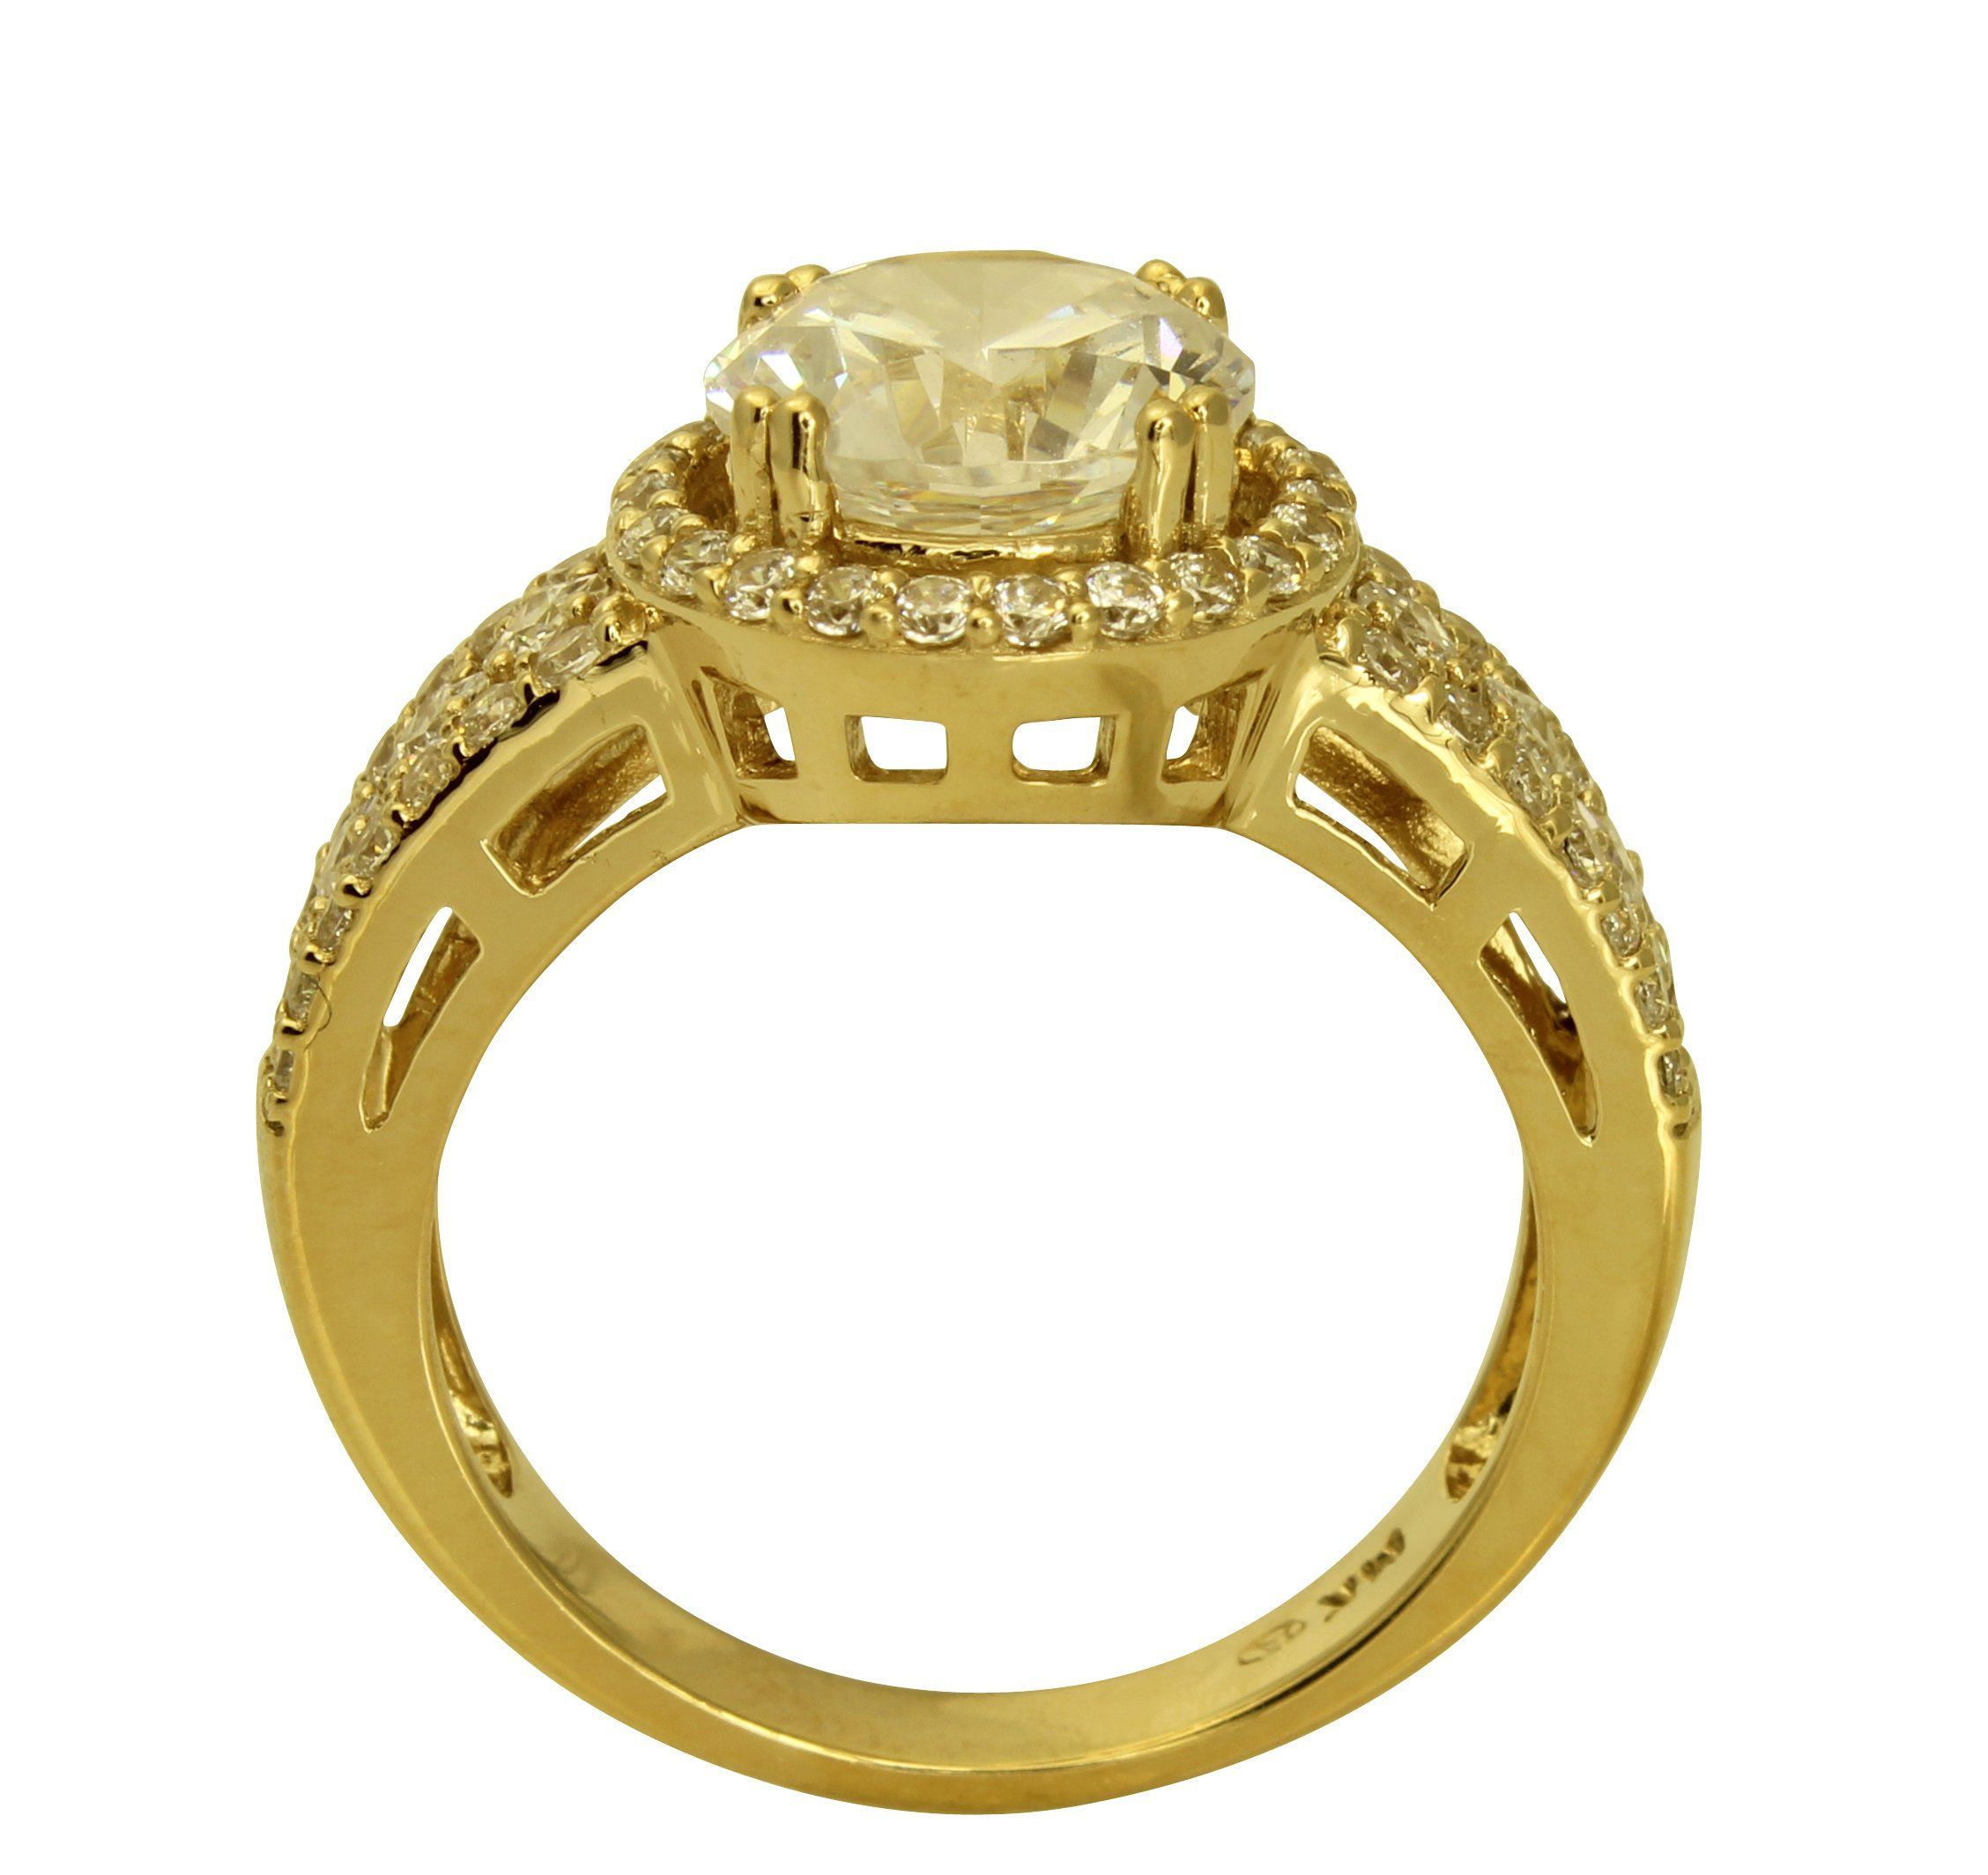 300 Ct 14K Real Yellow Gold Big Fancy Round Cut Center with